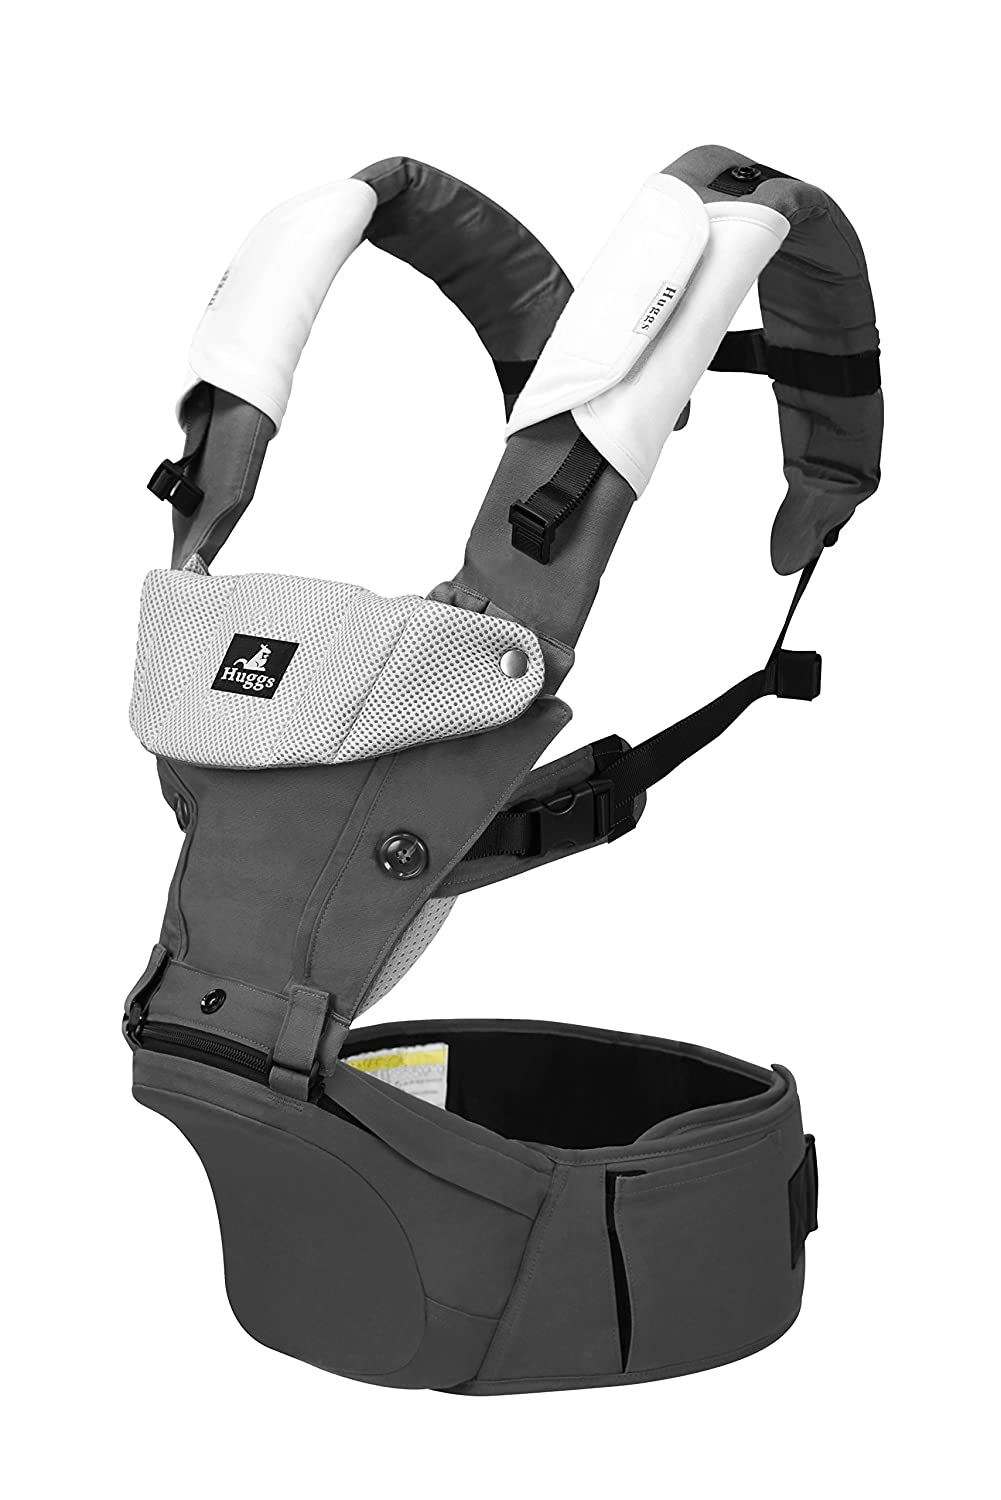 a5bed24fa7f Abiie HUGGS Baby Carrier Hip Seat - Approved by U.S. Safety Standards -  Healthy Sitting Position.